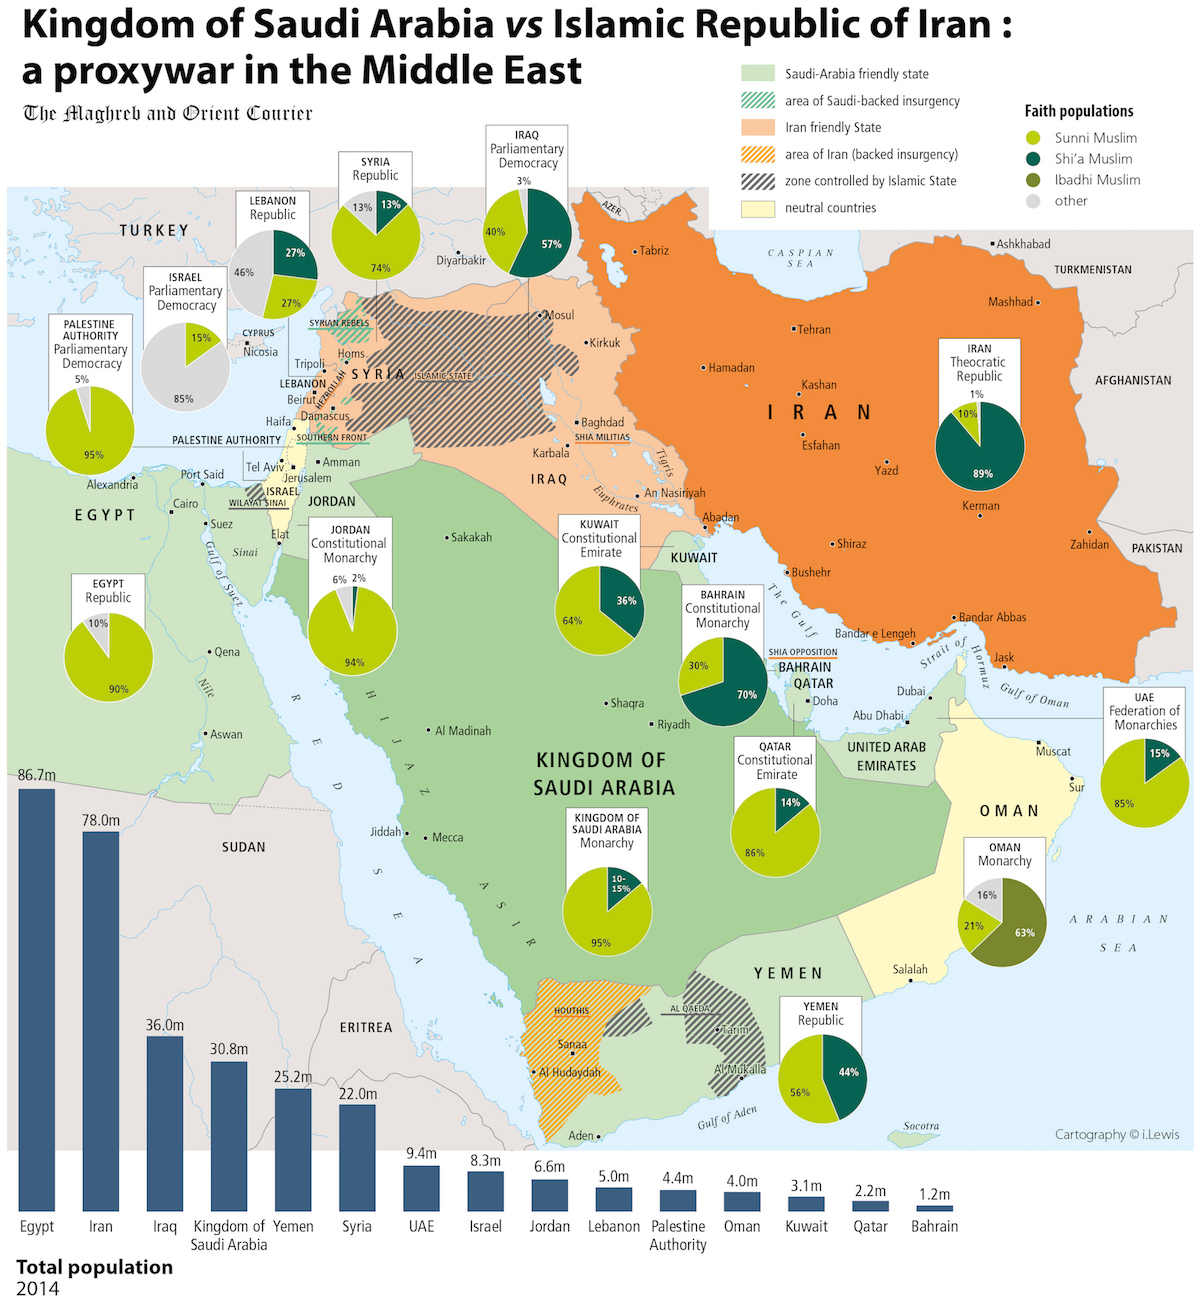 Proxy War in the Middle East, MAP: Proxy War in the Middle East?